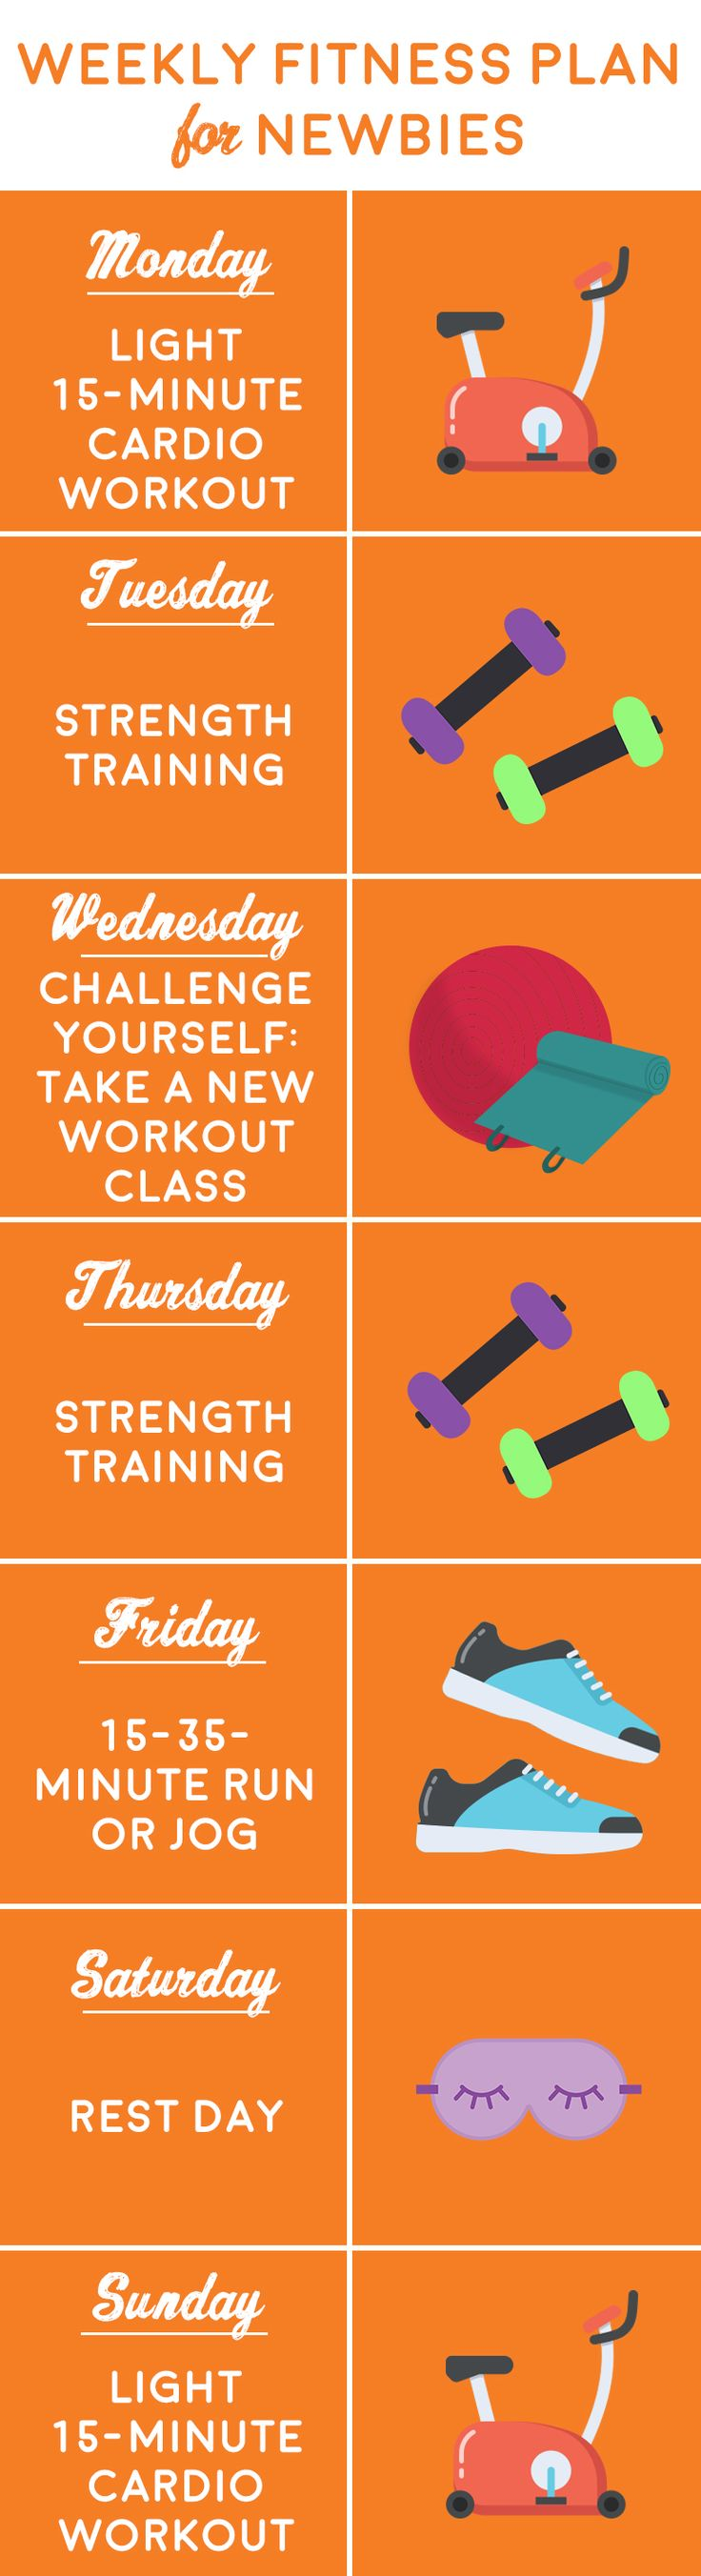 New to fitness? Start with this weekly plan!